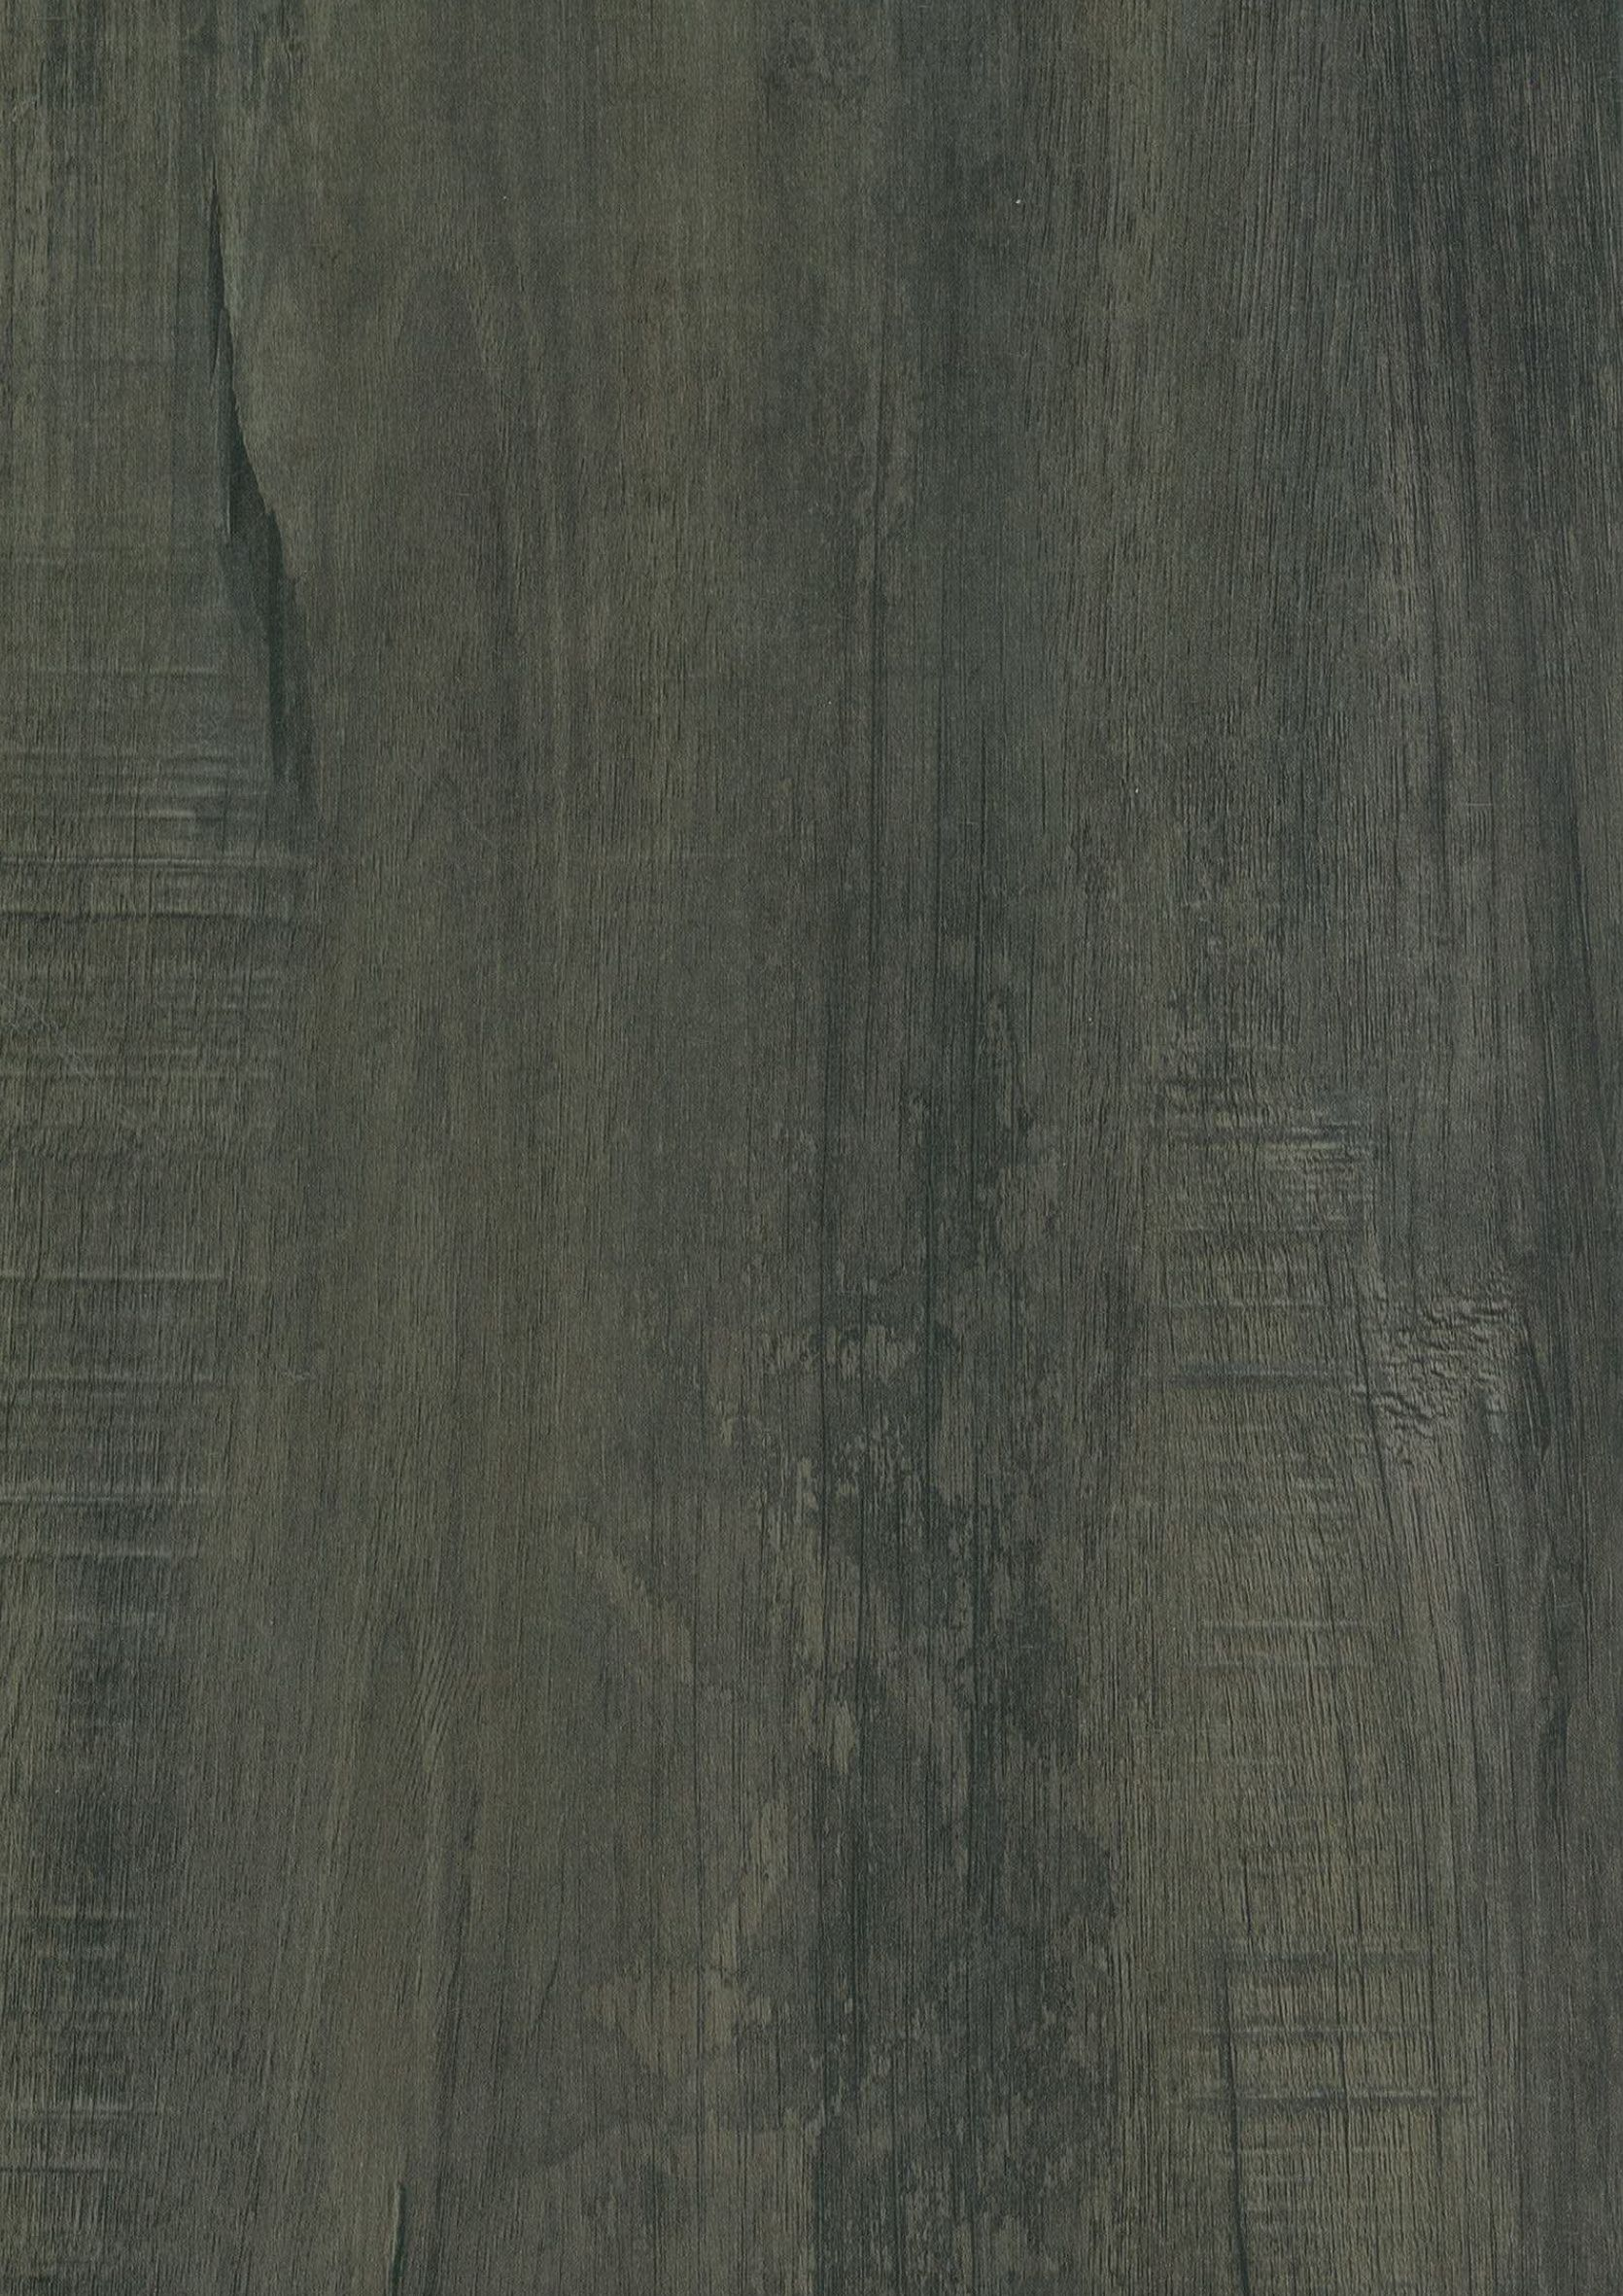 Goodfellow Arizona Collection WPC SEDONA OAK Flooring